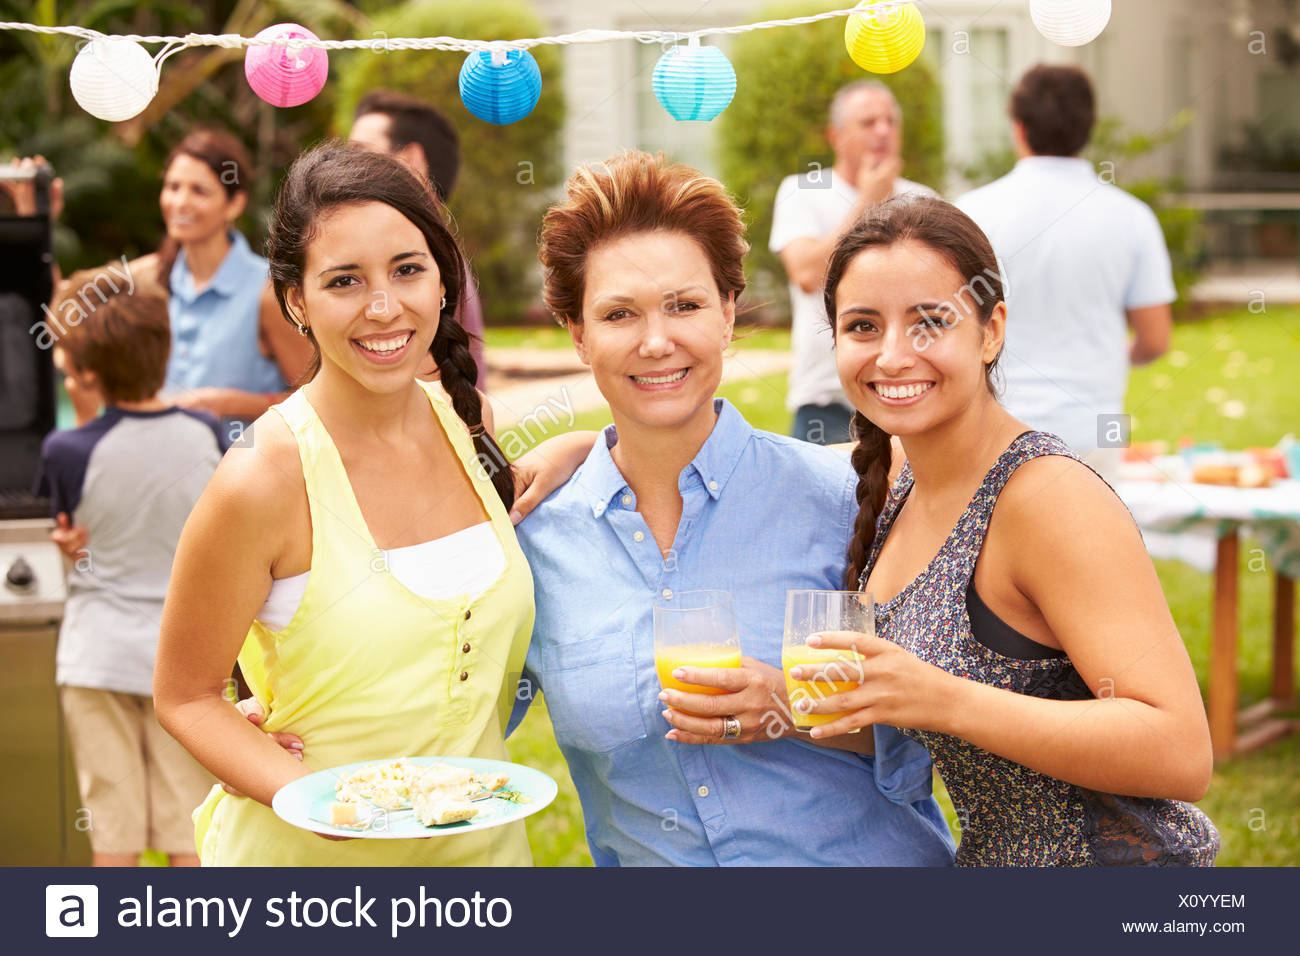 Mother With Adult Daughters Enjoying Party In Garden - Stock Image